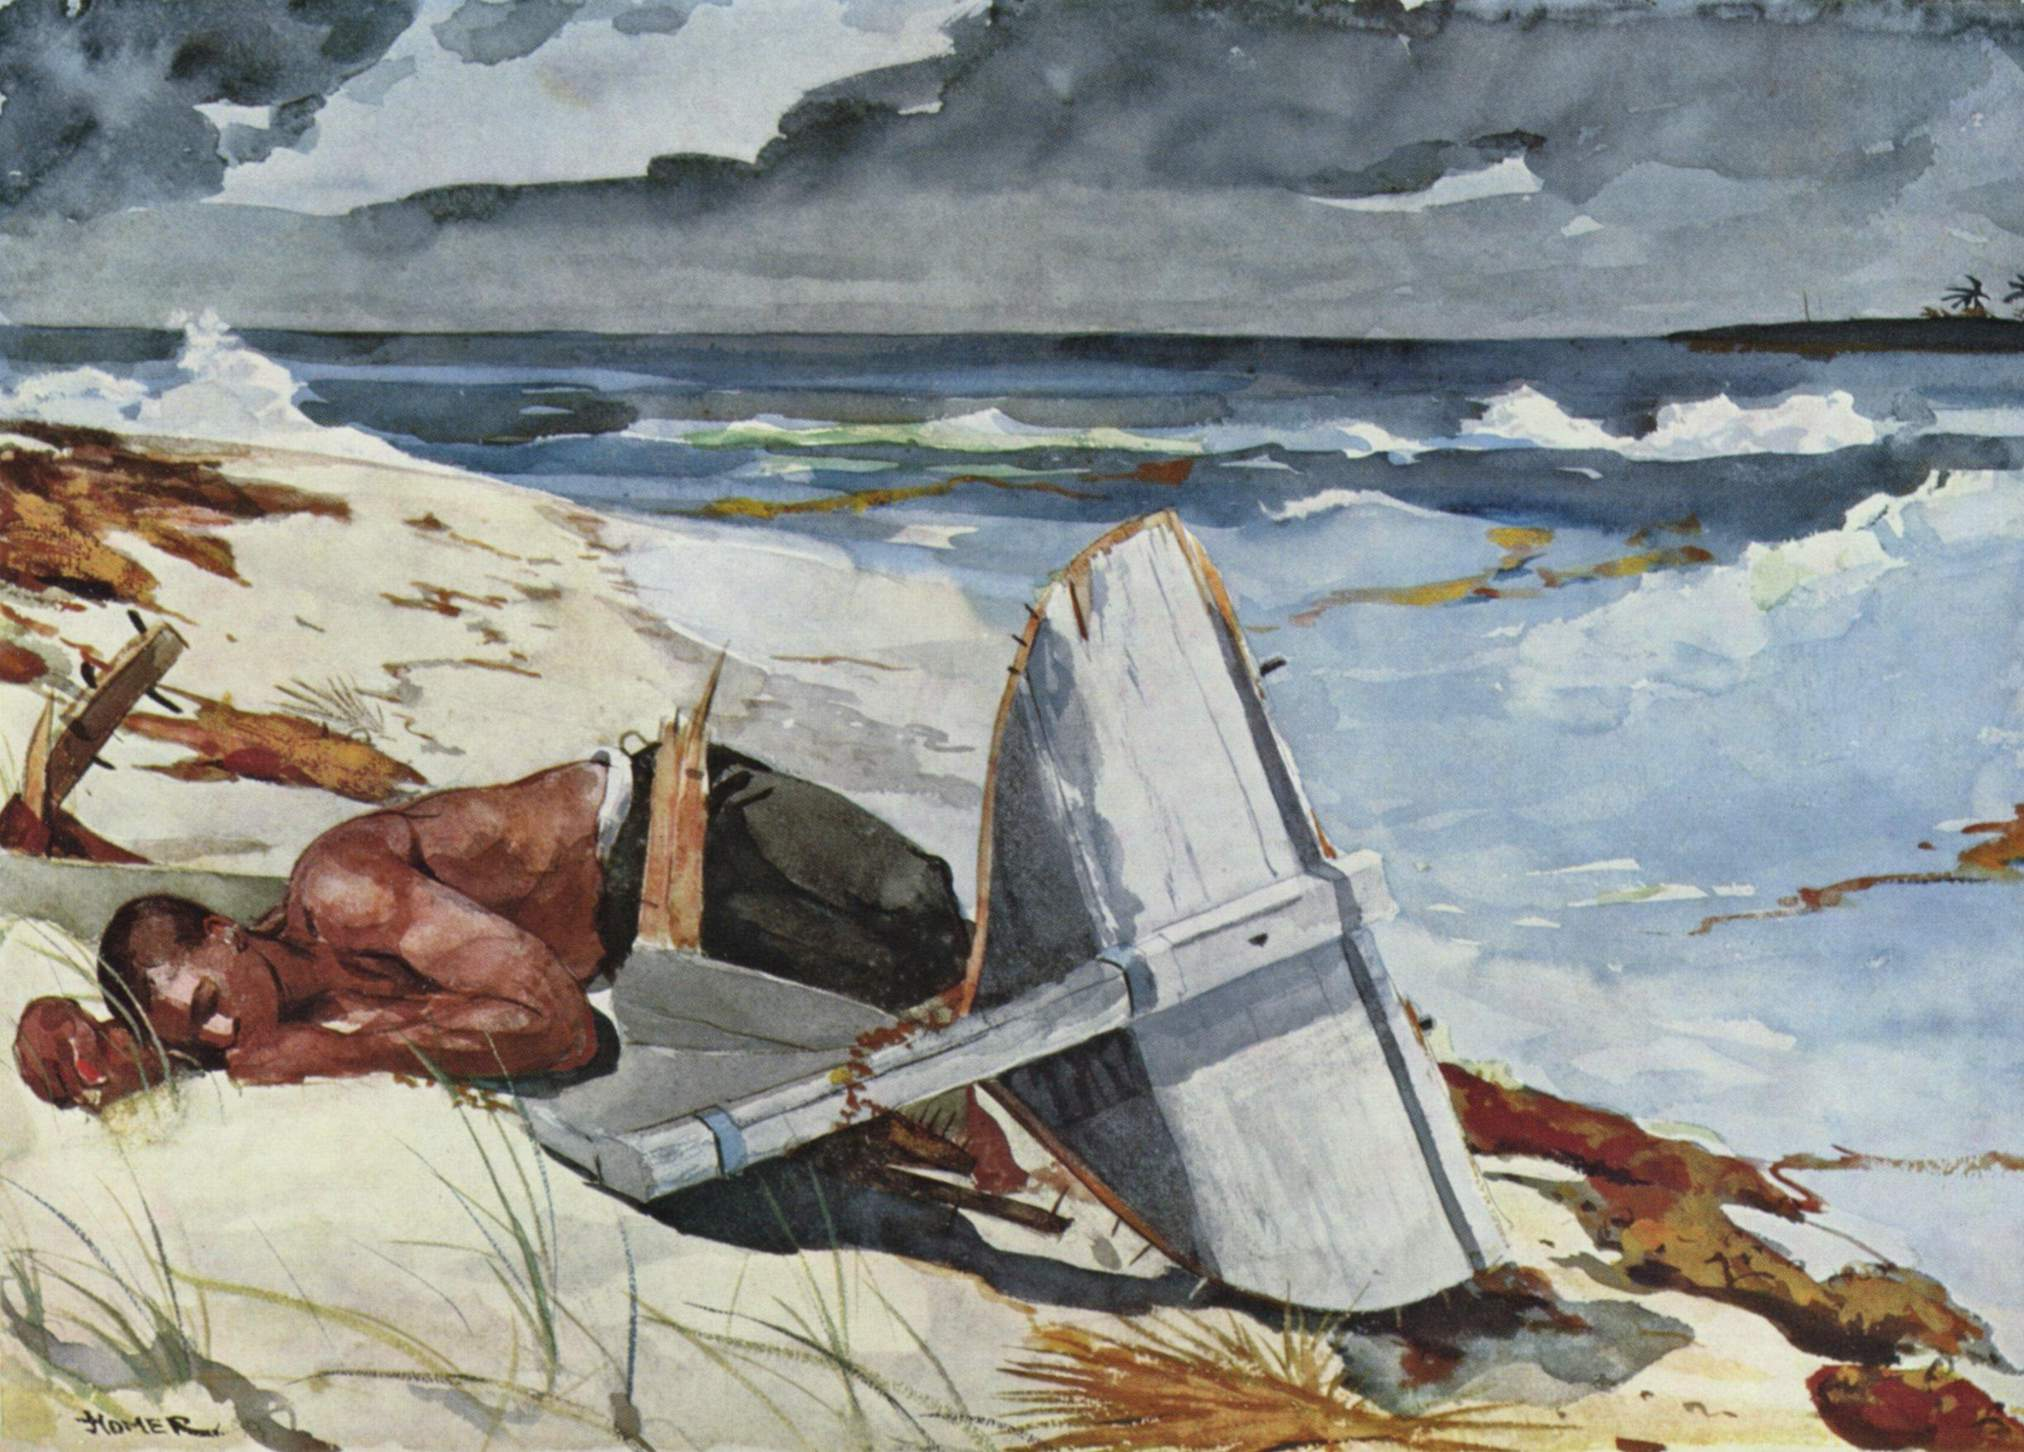 https://i2.wp.com/upload.wikimedia.org/wikipedia/commons/2/2b/Winslow_Homer_005.jpg